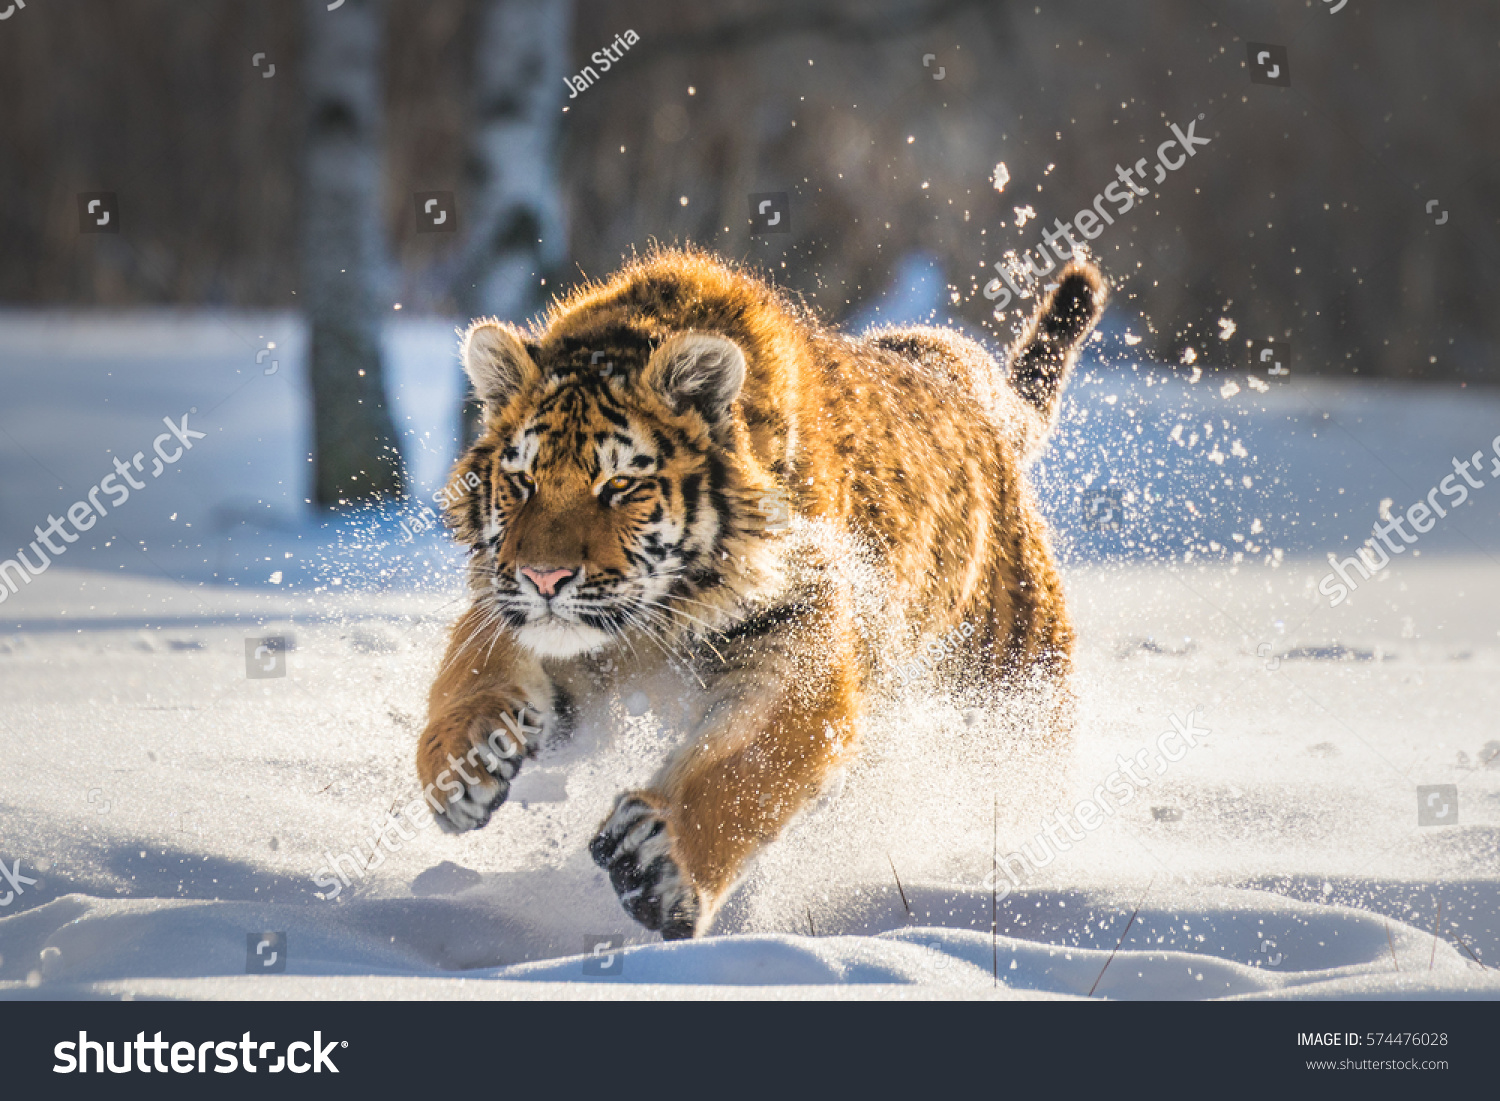 Siberian tiger running snow beautiful dynamic 574476028 siberian tiger running in snow beautiful dynamic and powerful photo of this majestic animal voltagebd Image collections